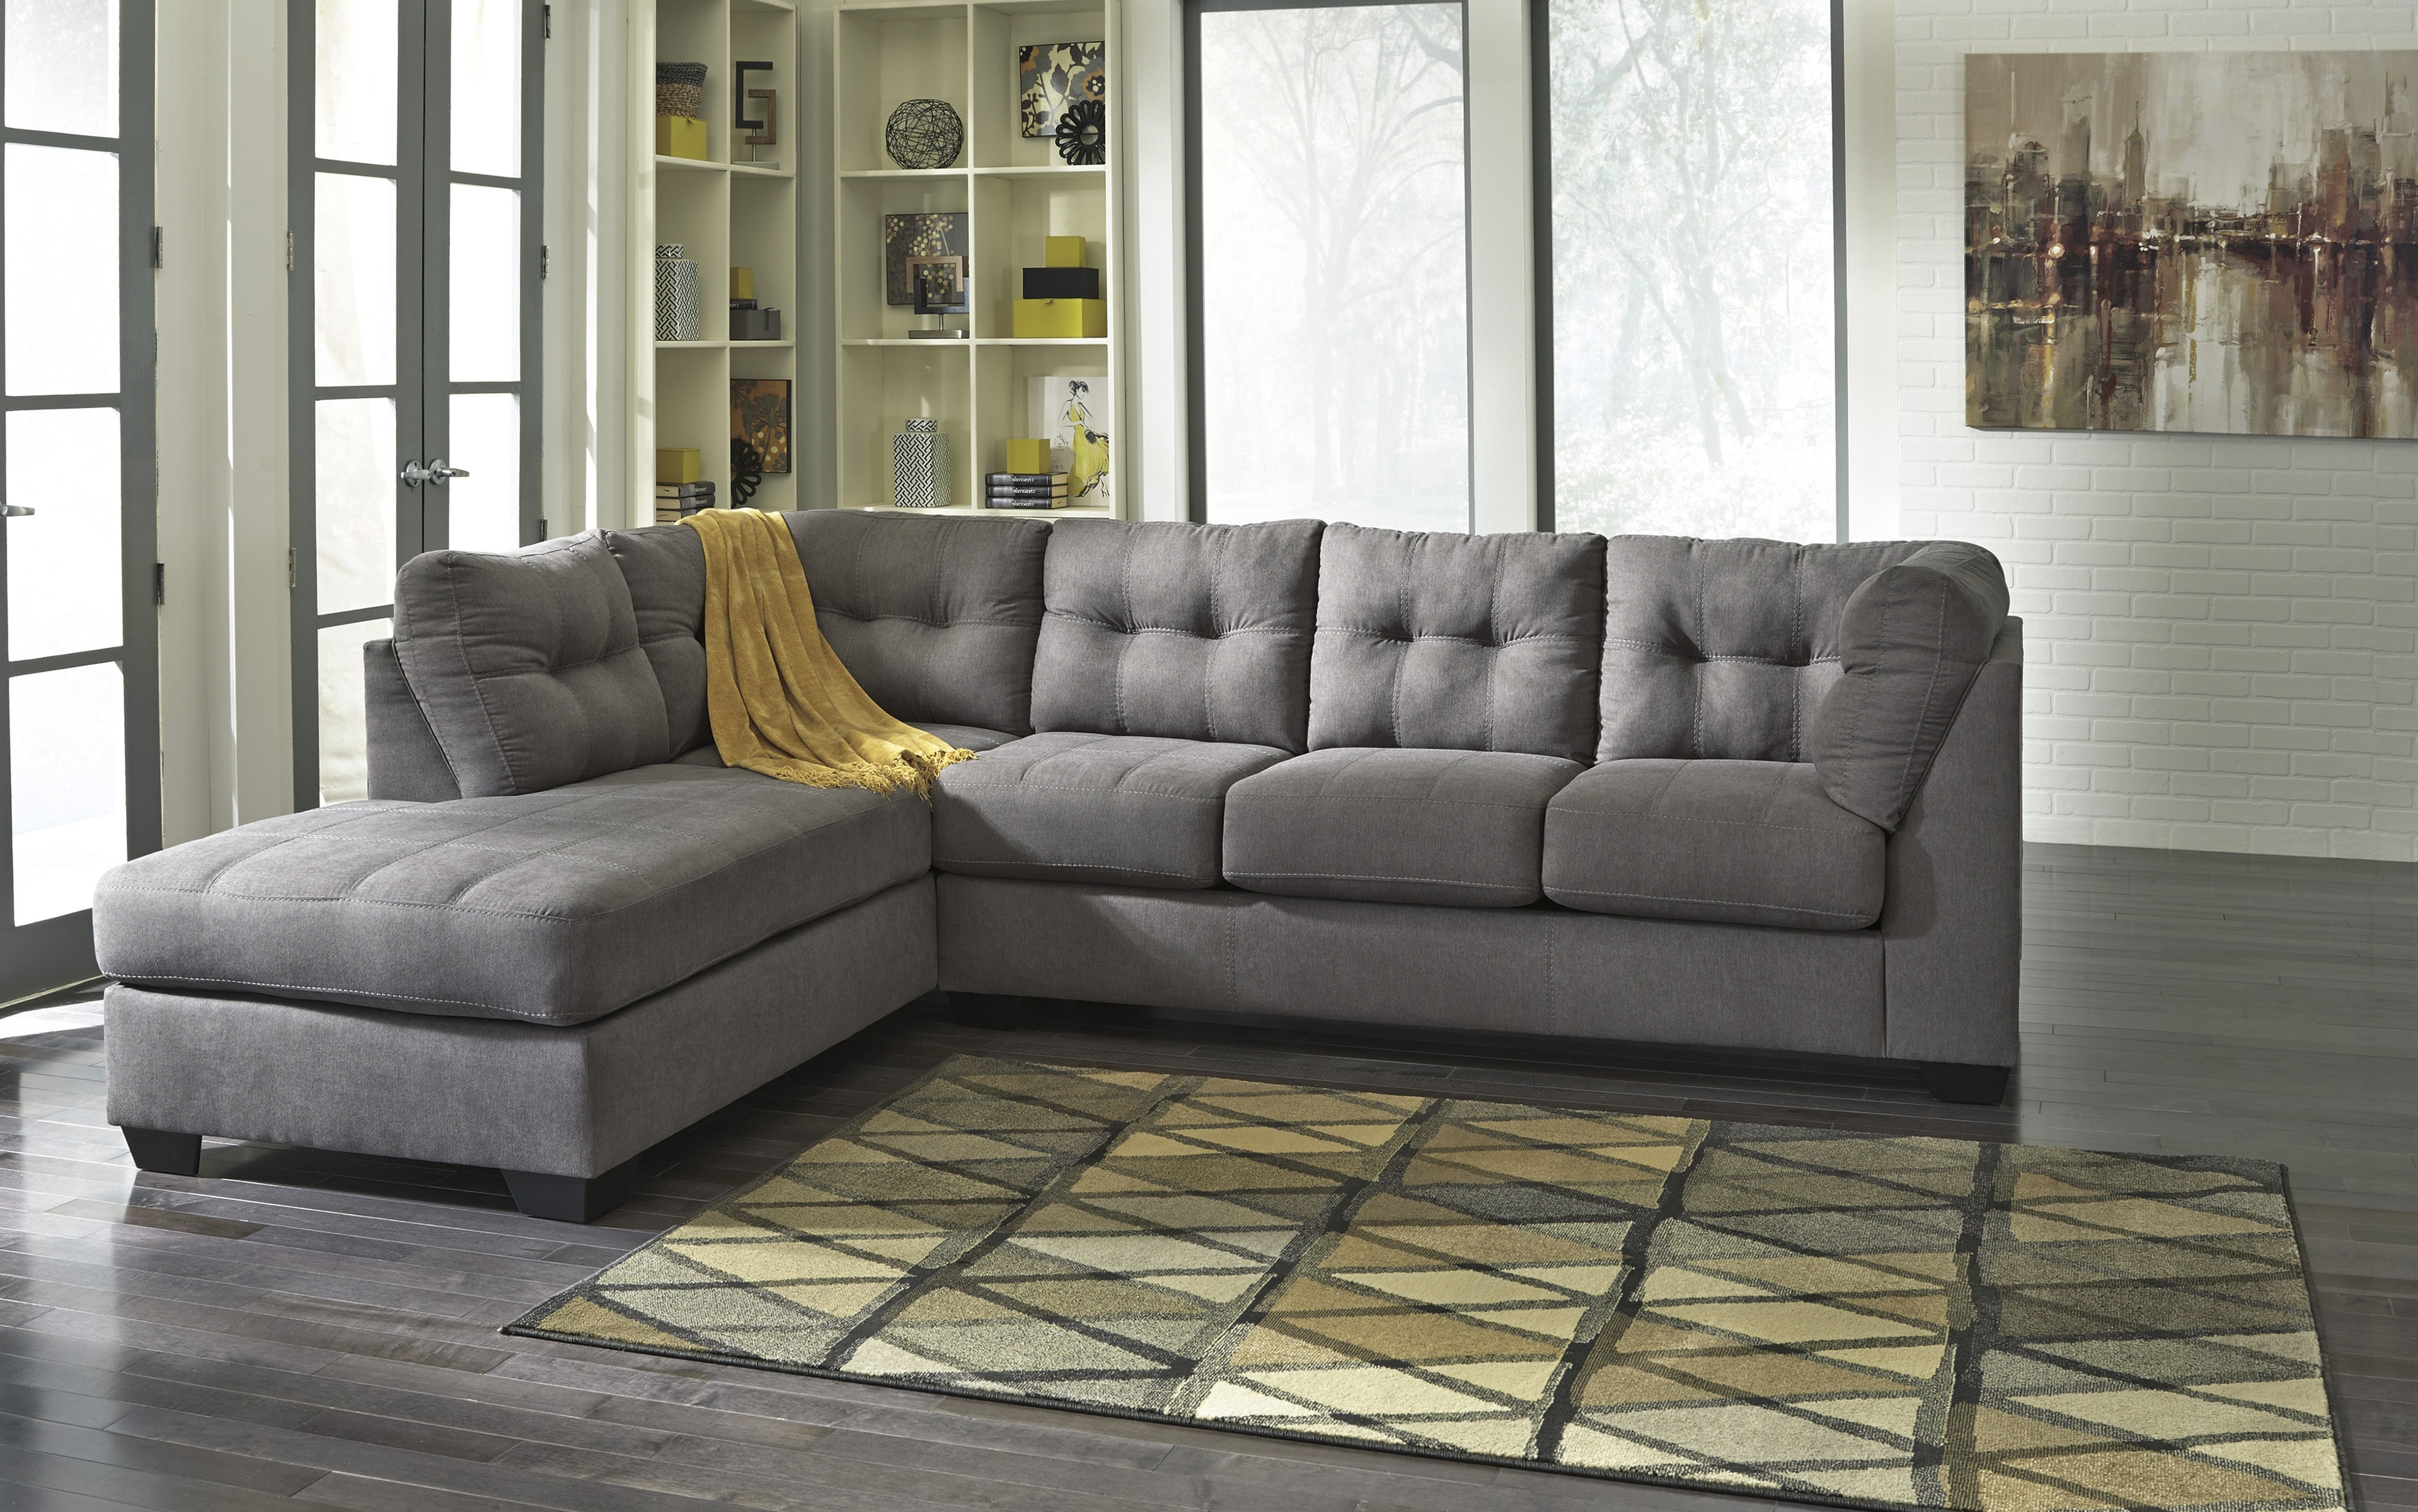 The Classy Home Intended For Most Popular Ashley Furniture Chaise Sofas (View 11 of 15)